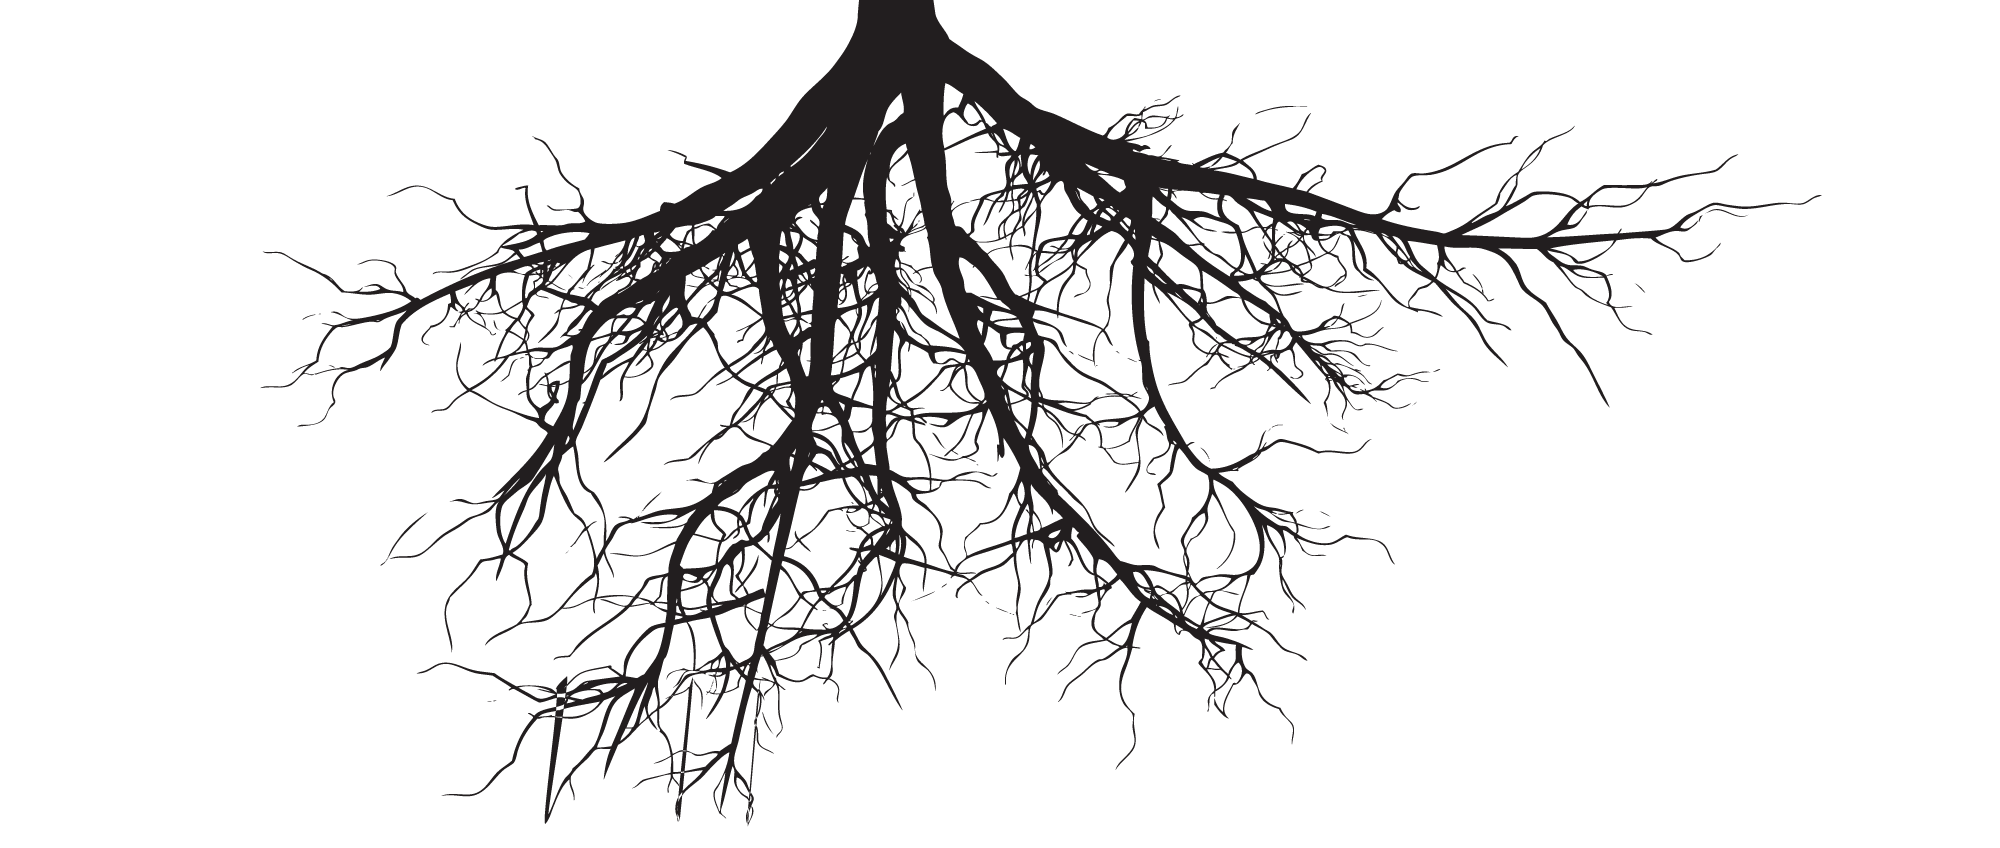 Tree trunk with roots clipart jpg royalty free download Roots transparent PNG - StickPNG jpg royalty free download